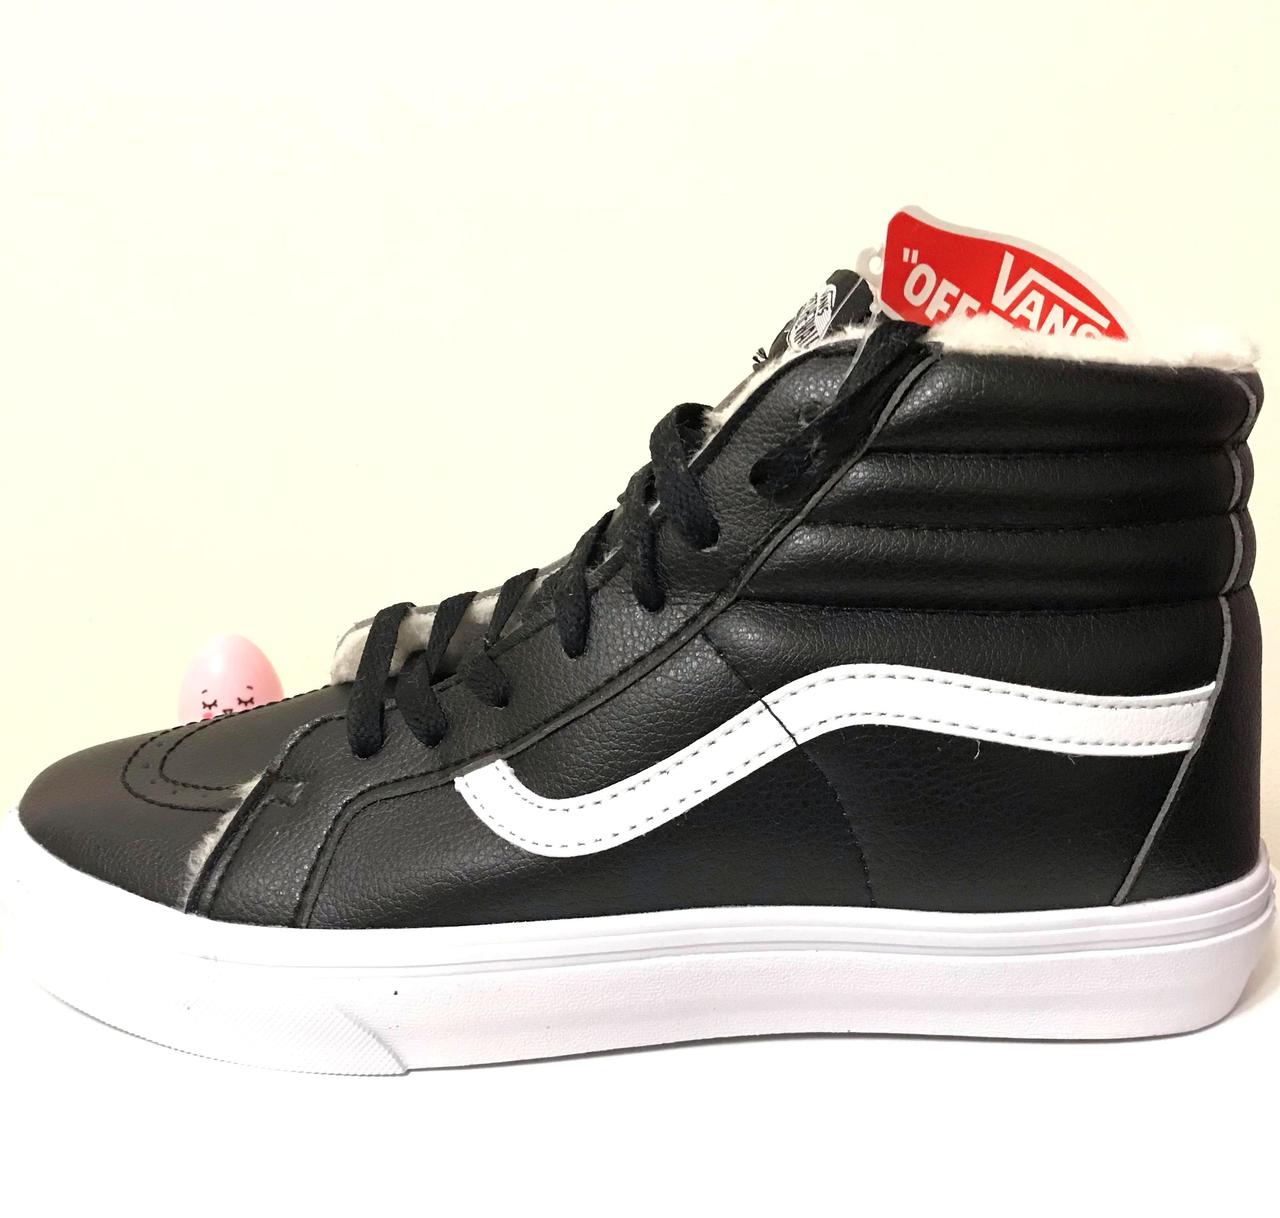 9cfafa7924a4 Зимние кеды Vans Old Skool high CANVAS SK8-HI с мехом, vans old school,  ванс олд скул - Bigl.ua